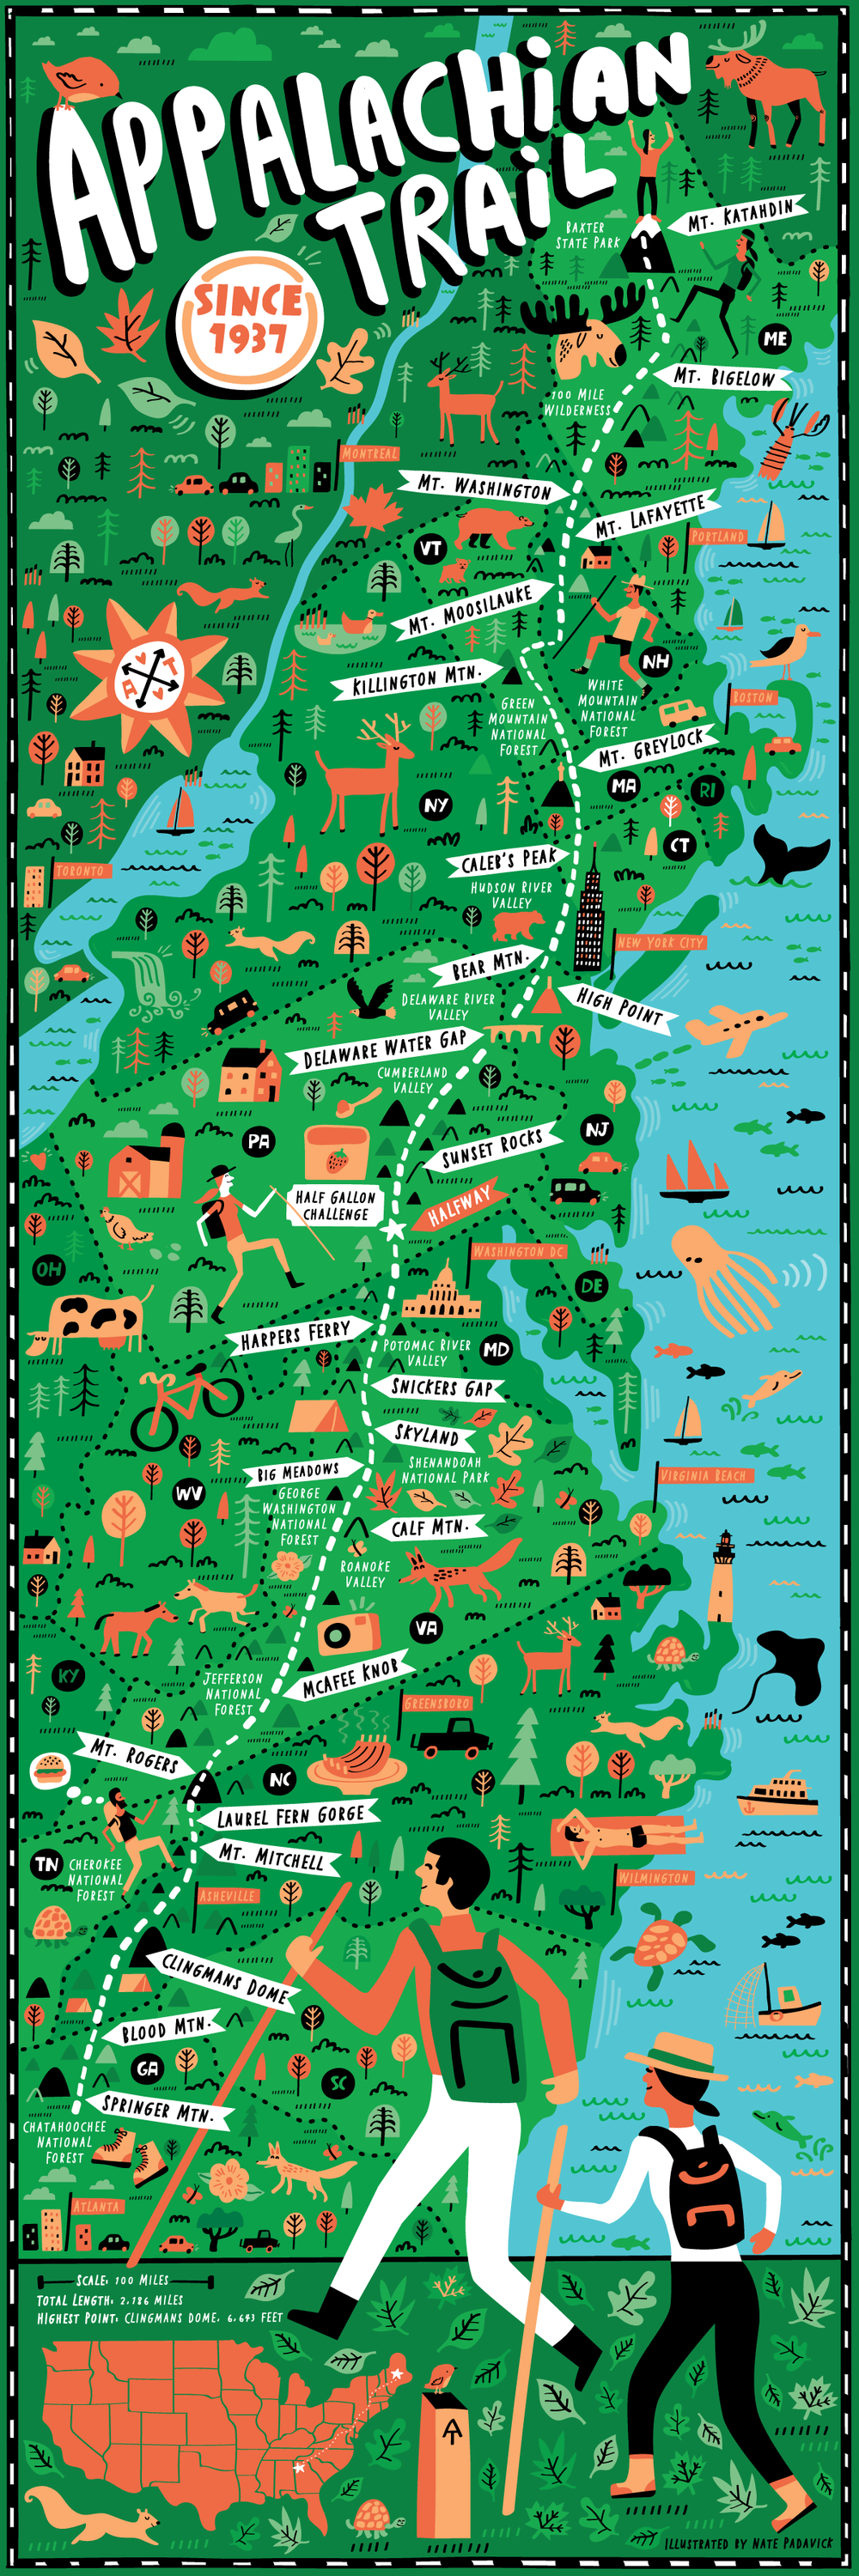 Appalachian Trail map illustrated by Nate Padavick